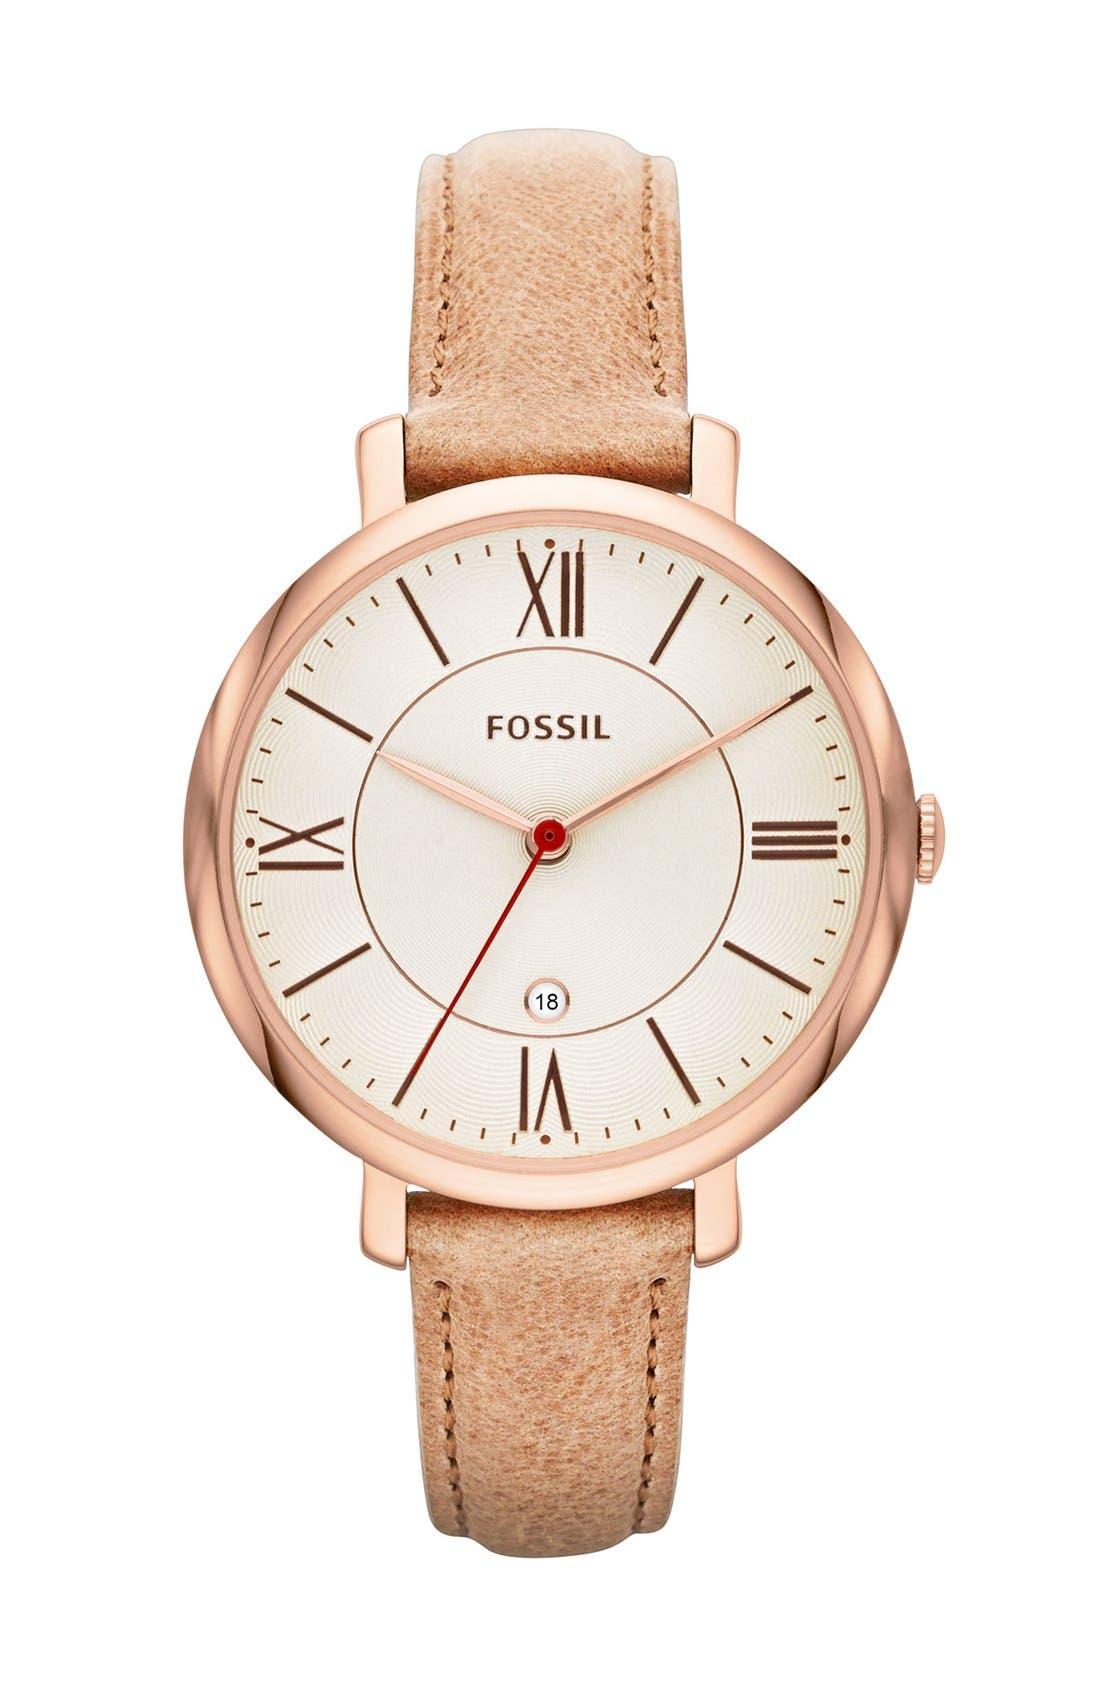 FOSSIL, 'Jacqueline' Round Leather Strap Watch, 36mm, Main thumbnail 1, color, SAND/ ROSE GOLD